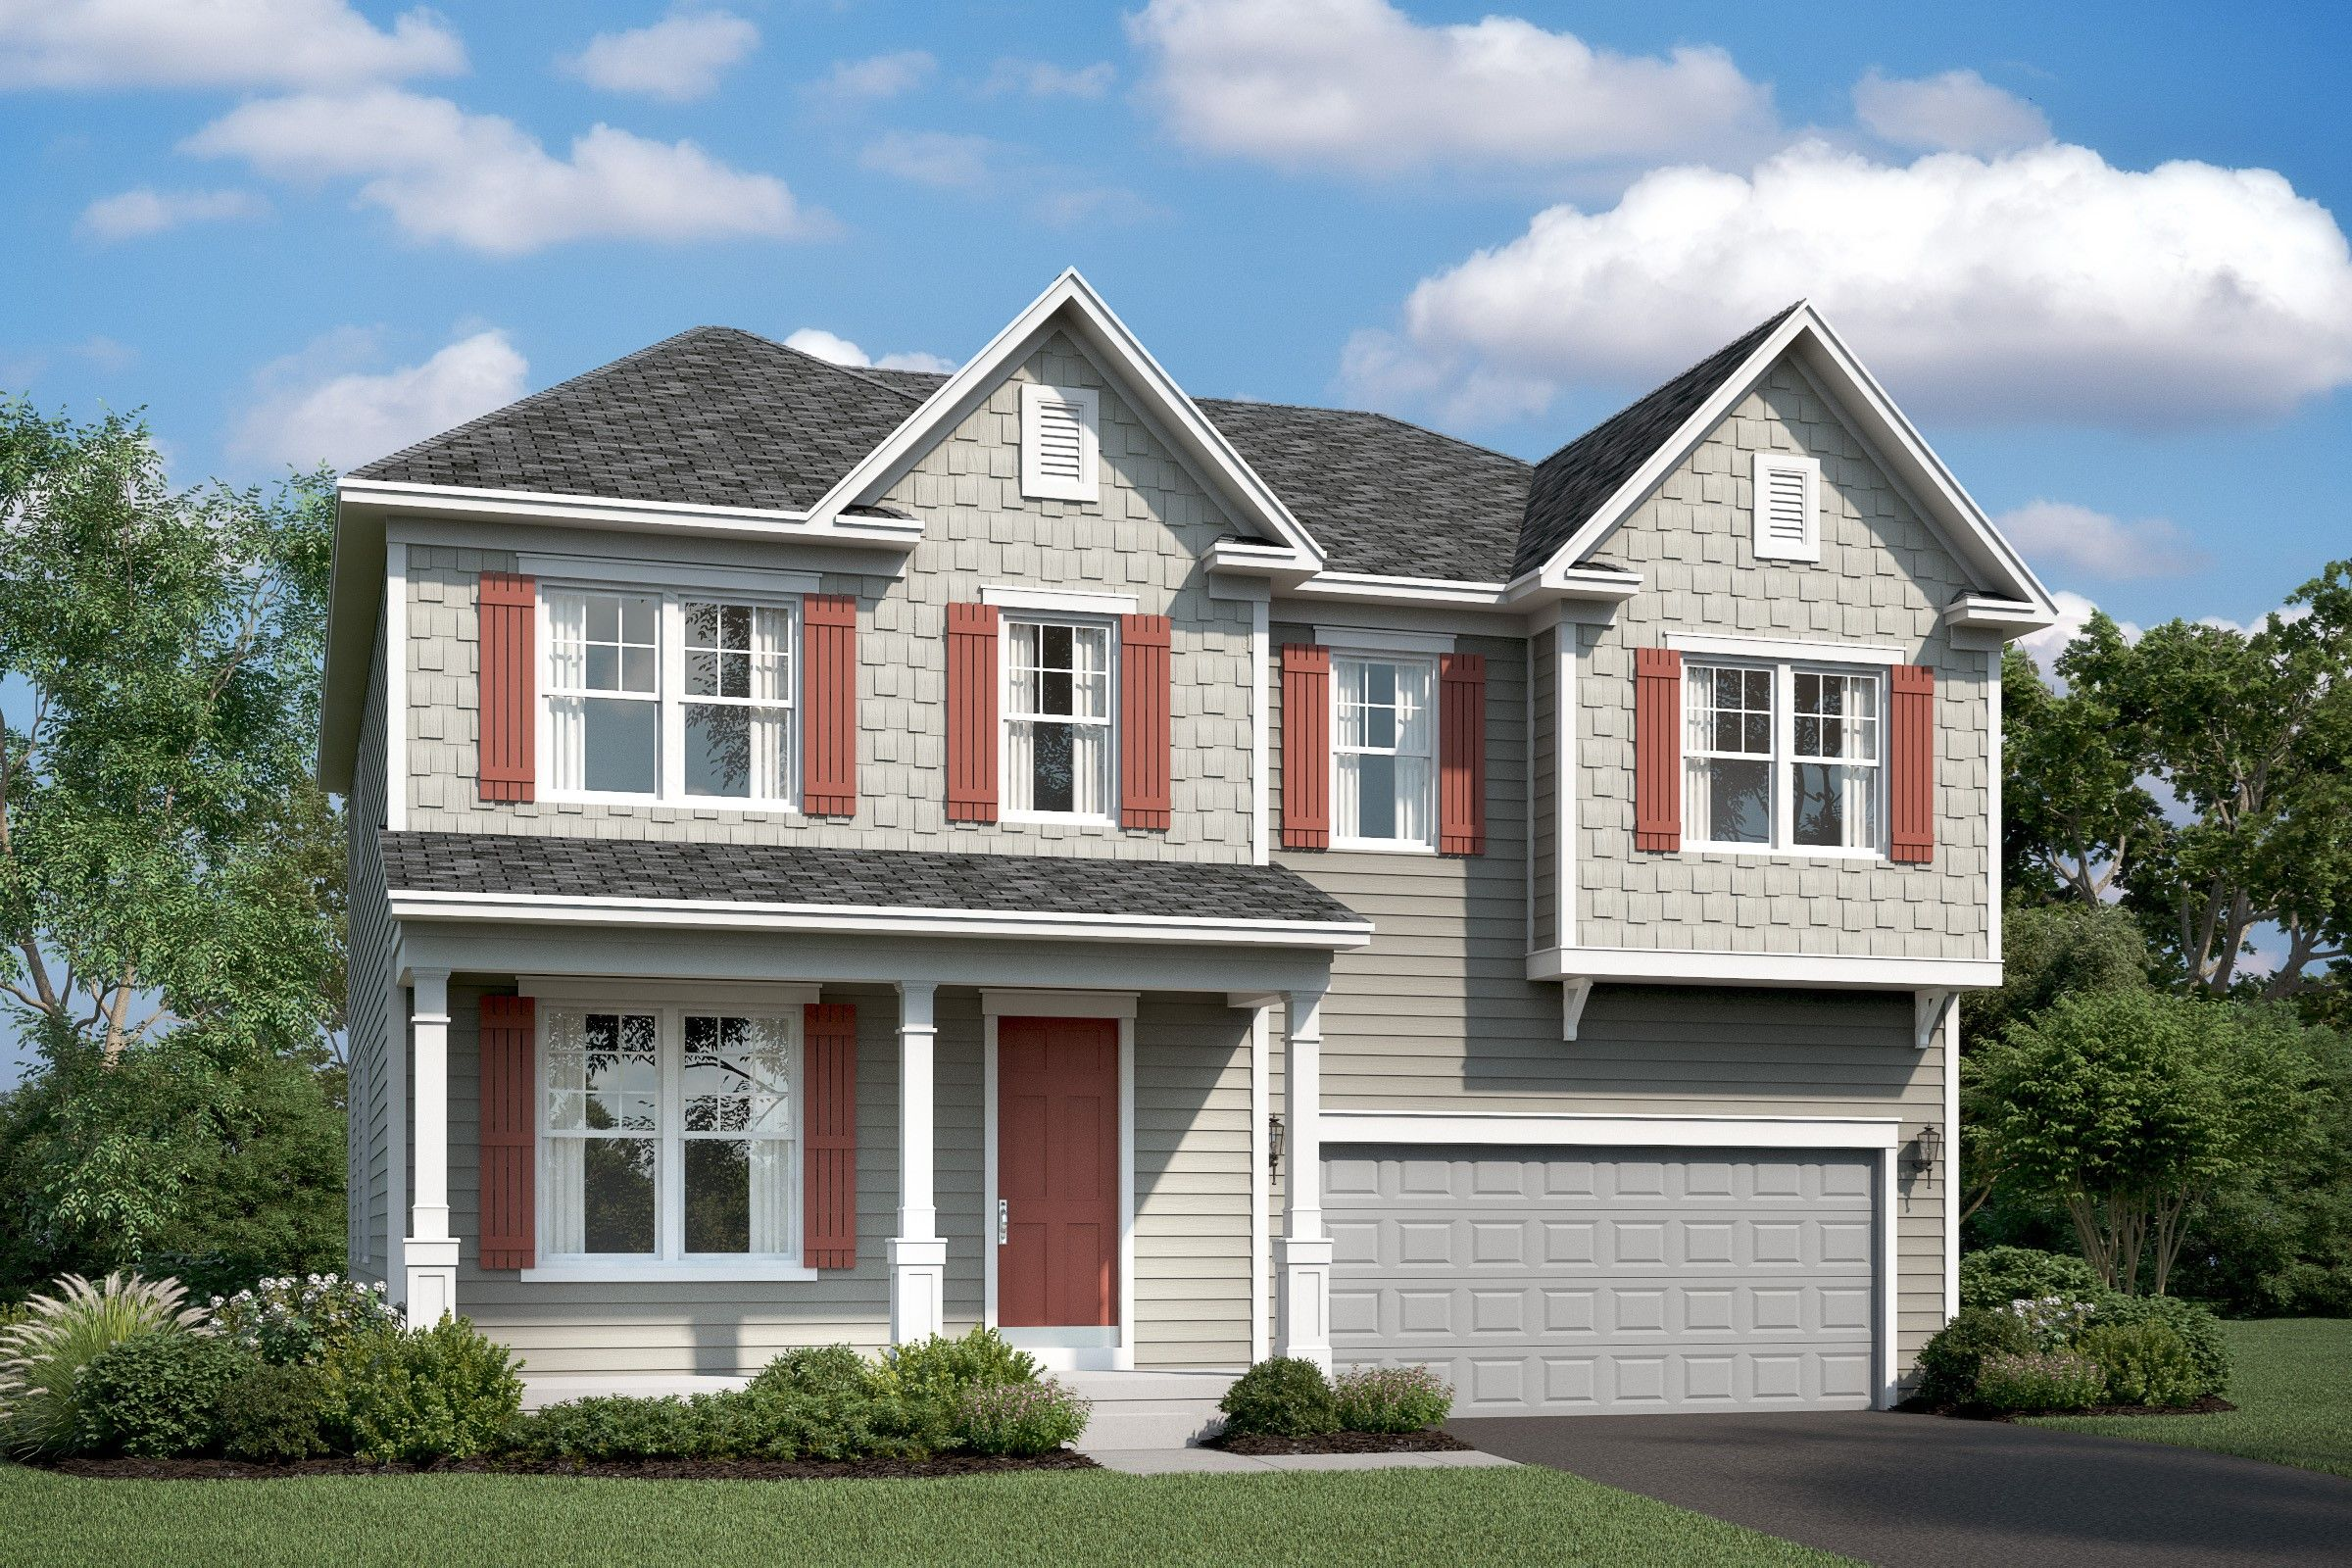 Single Family for Active at Stone Mill - Tomasen 7904 Meridian Drive Pasadena, Maryland 21122 United States